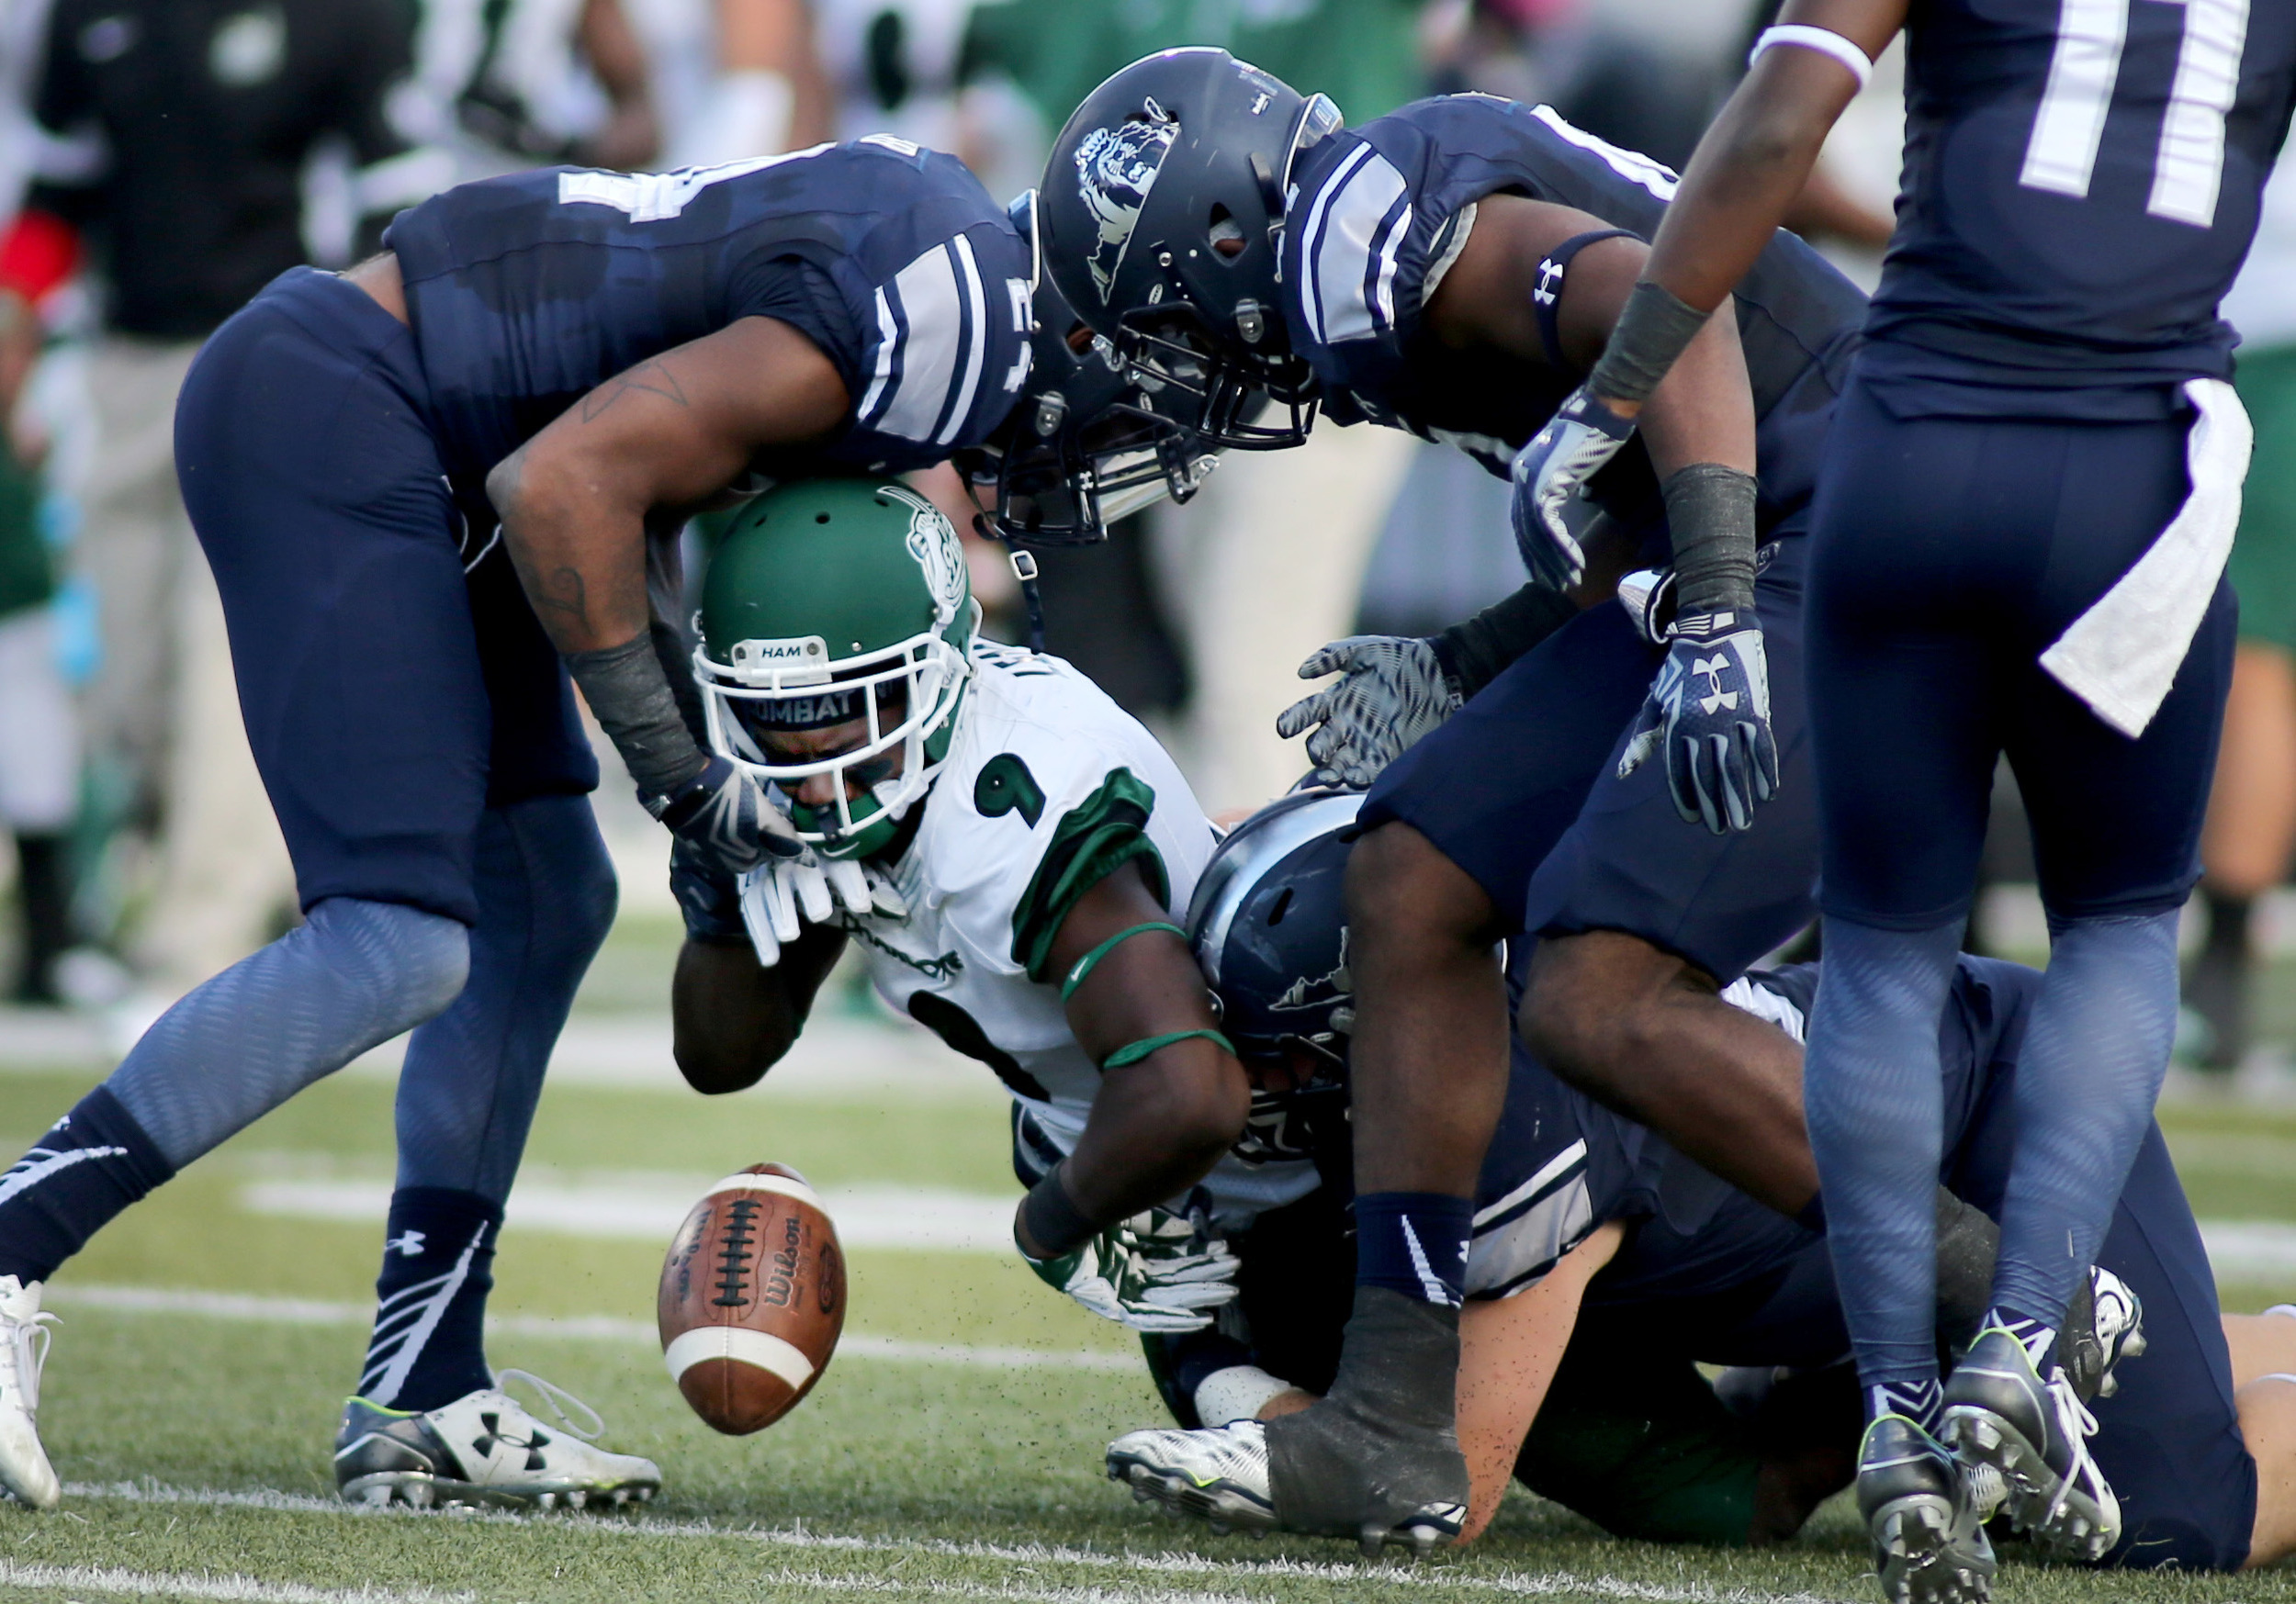 The Old Dominion defense lead by Fellonte Misher, left, TJ Ricks, top center, and Pat Toal, on ground, force a fumble by Charlotte's Uriah LeMay in the second quarter, Saturday, Oct. 17, 2015 at Foreman Field in Norfolk.  (Jason Hirschfeld | For The Virginian-Pilot)